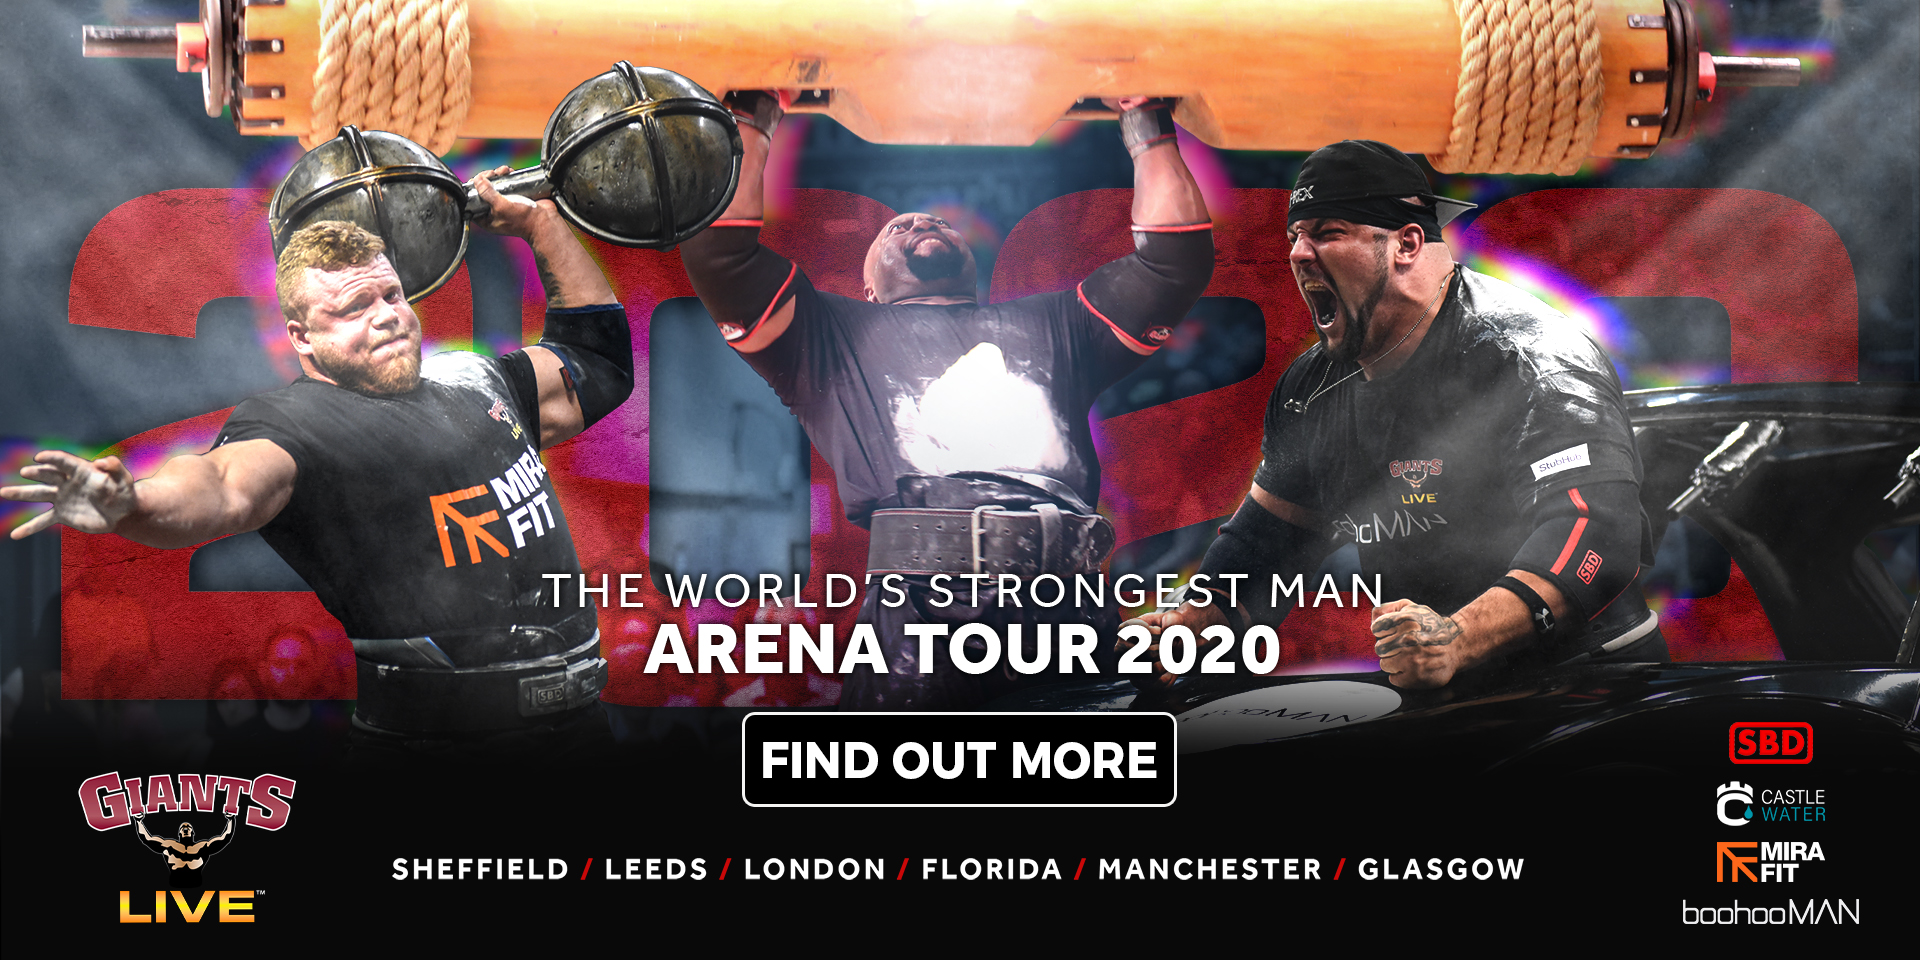 The Biggest STRONGMAN tour EVER! The Giants Live 2020 Arena Tour!